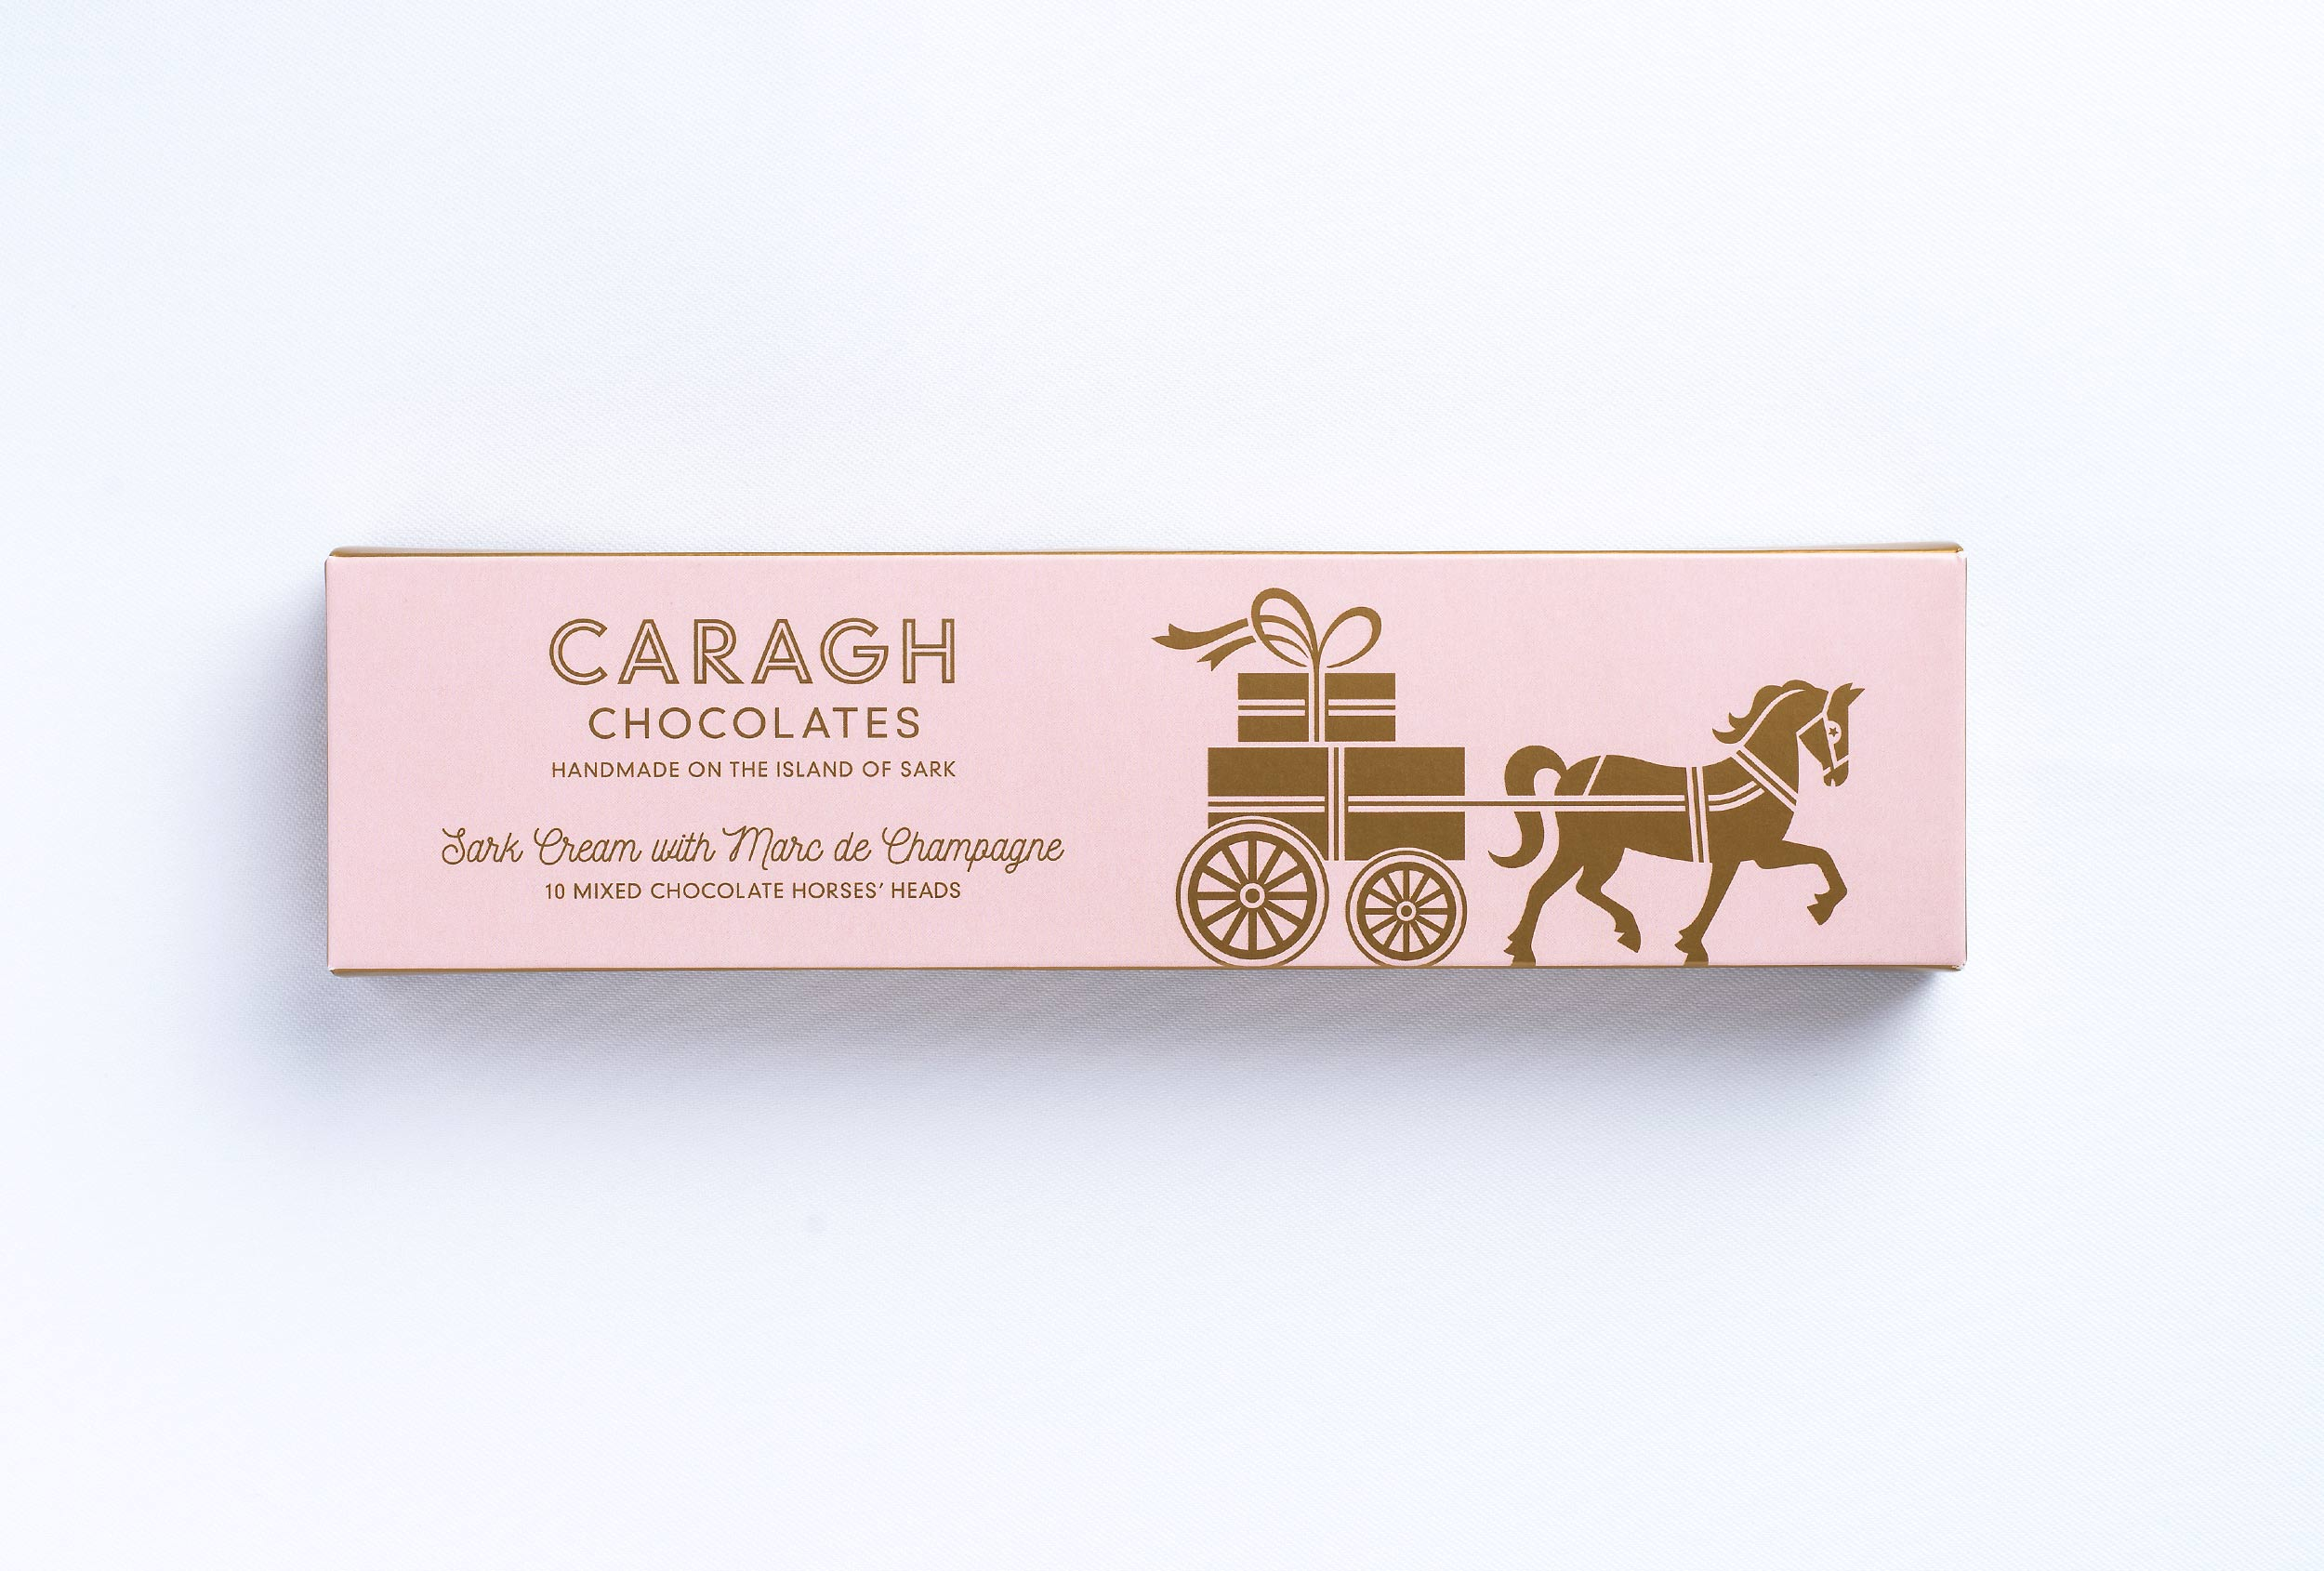 Branded packaging design for Caragh Chocolates based on Sark.